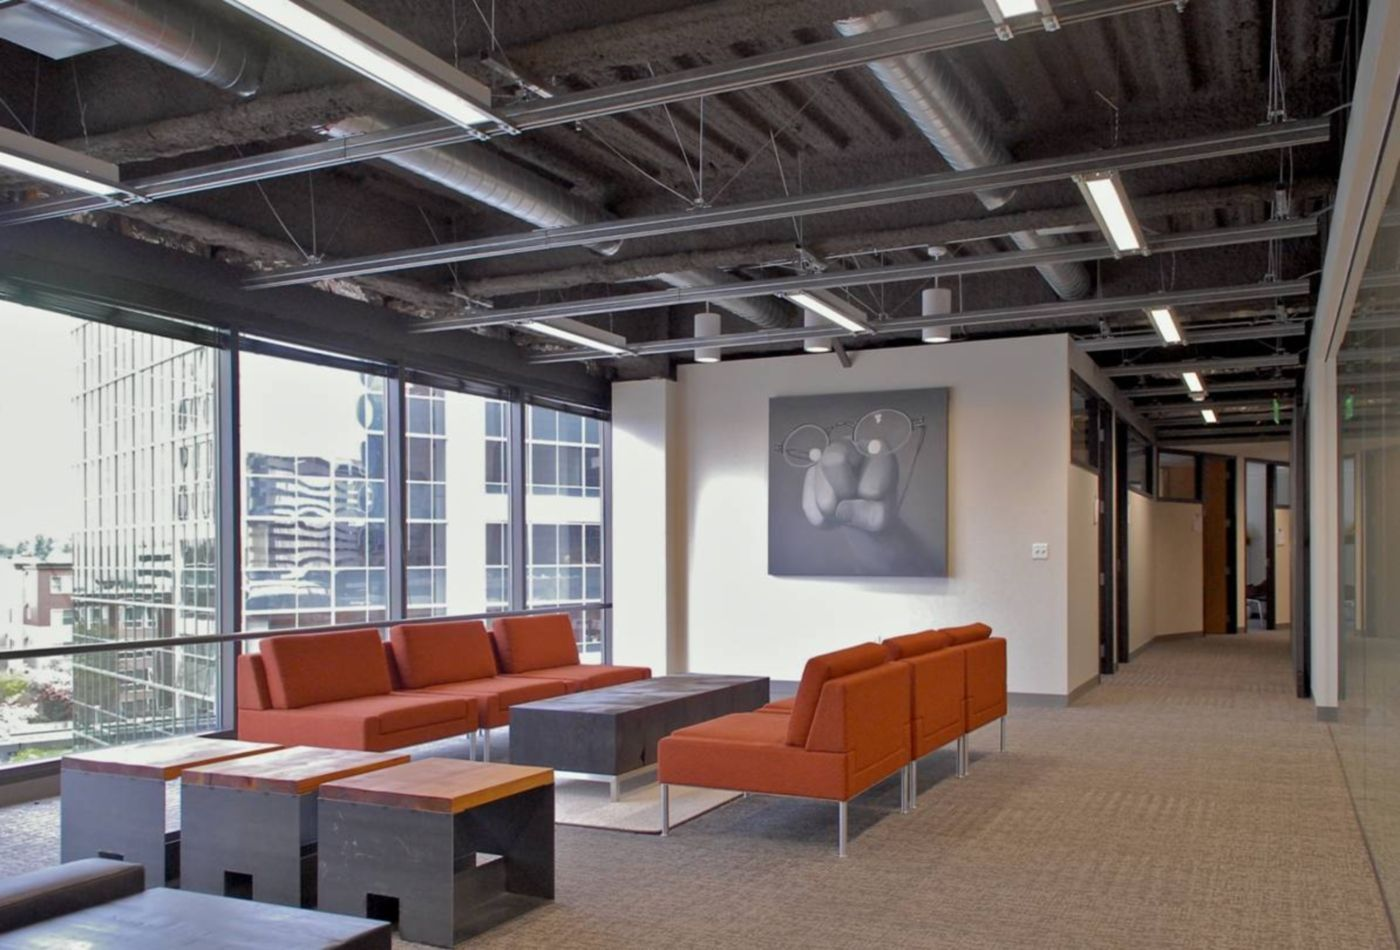 The valve offices business news design projects and ceiling for Interior designs for offices ideas